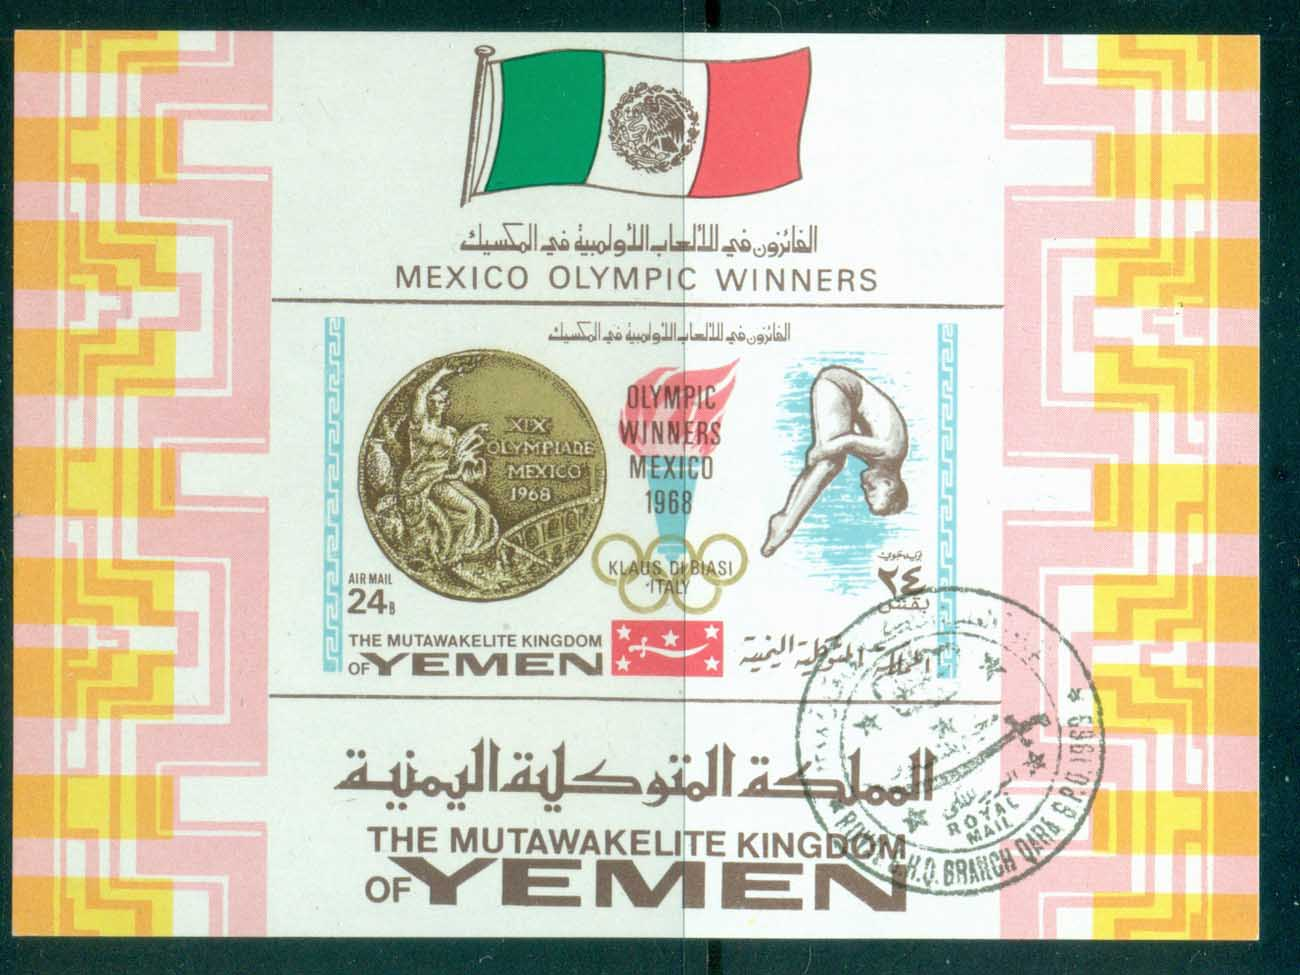 Yemen Kingdom 1968 Mexico Olympic Medal Winners MS MS CTO